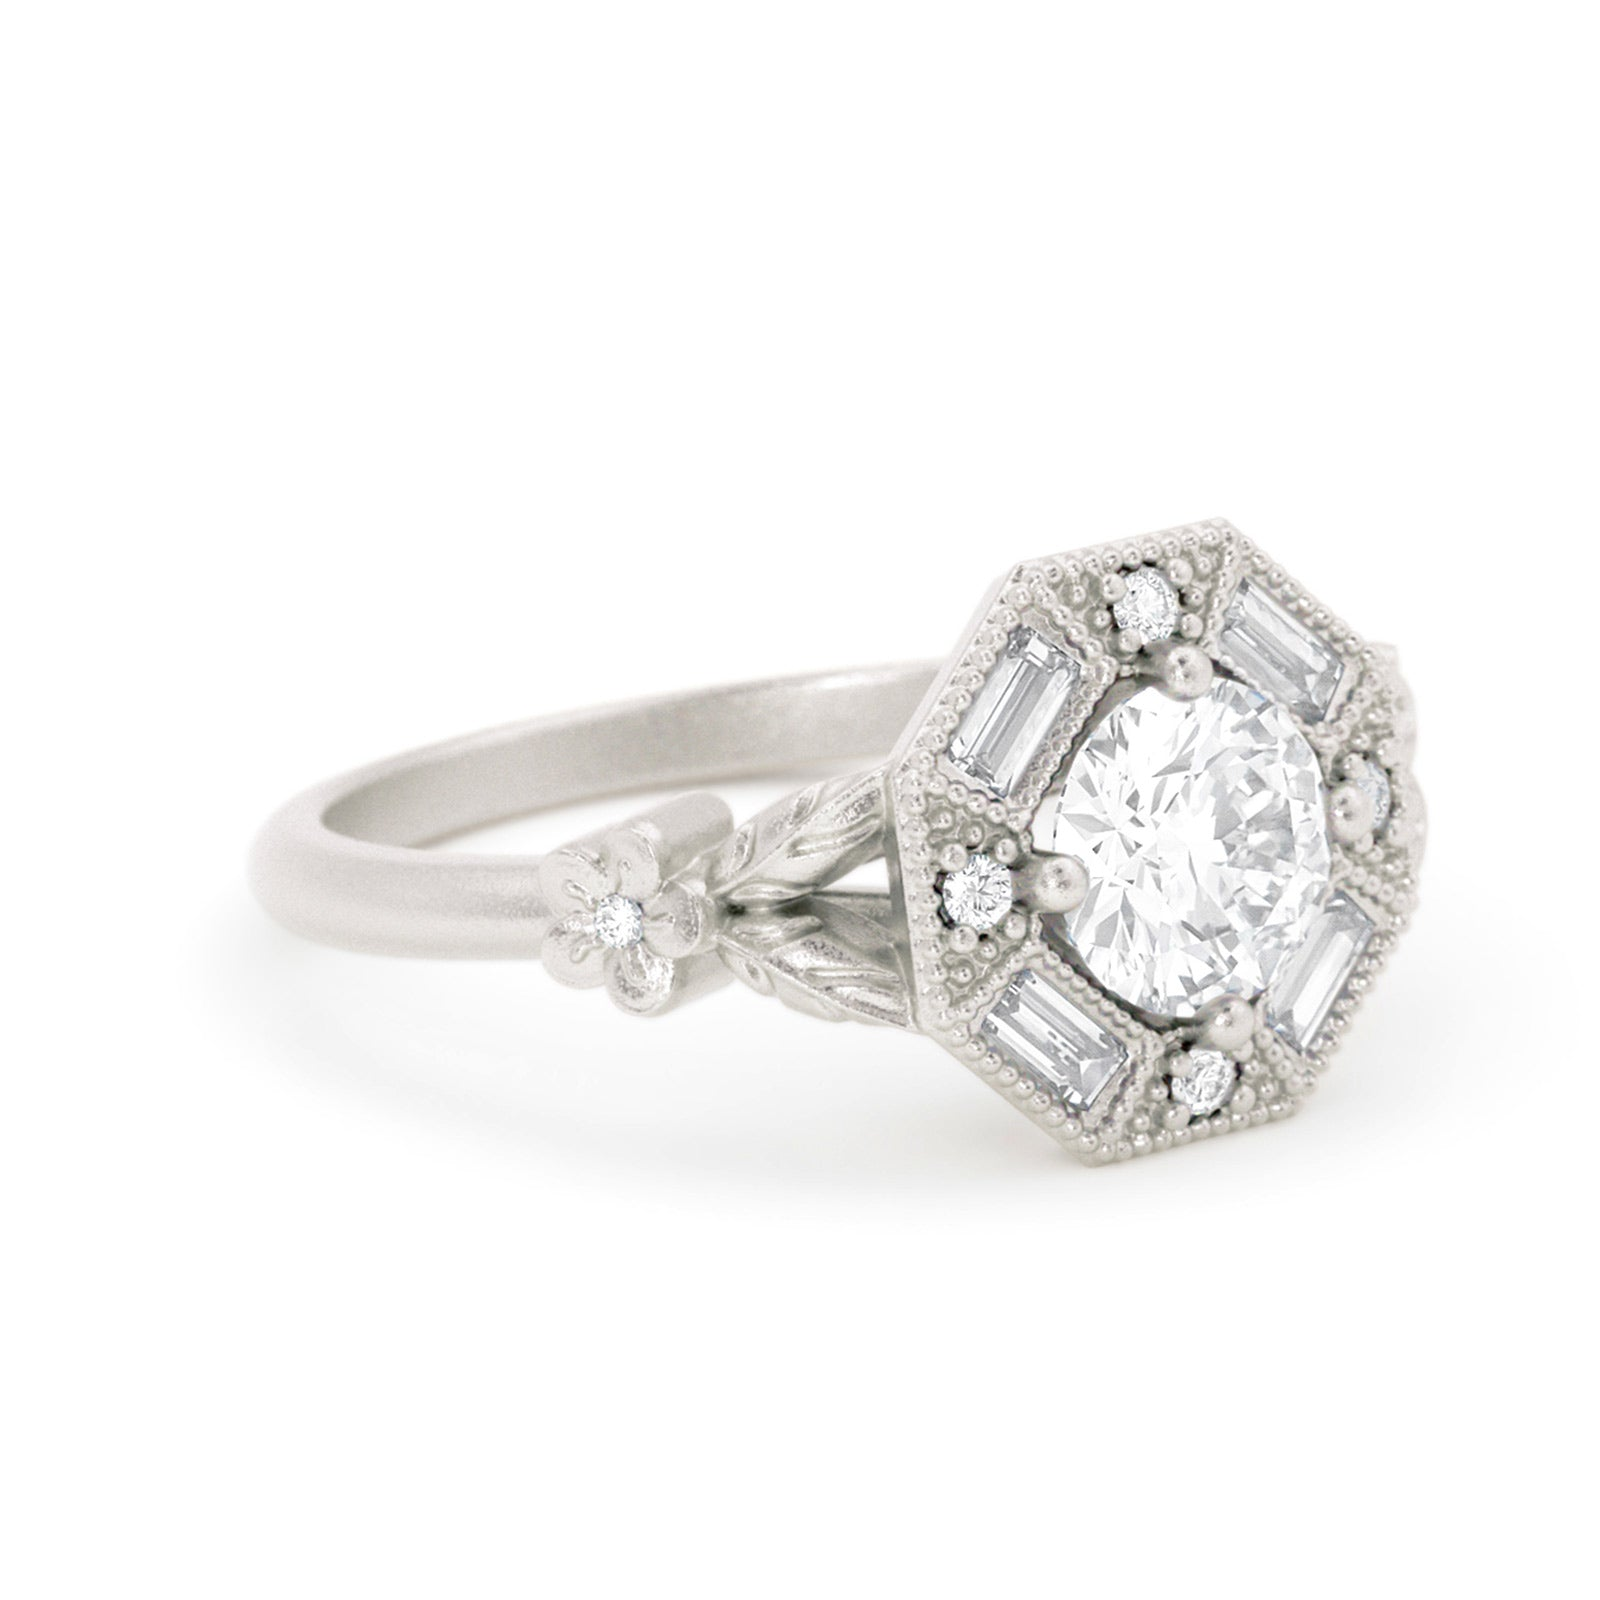 Greta Diamond Art Deco Ring White Gold